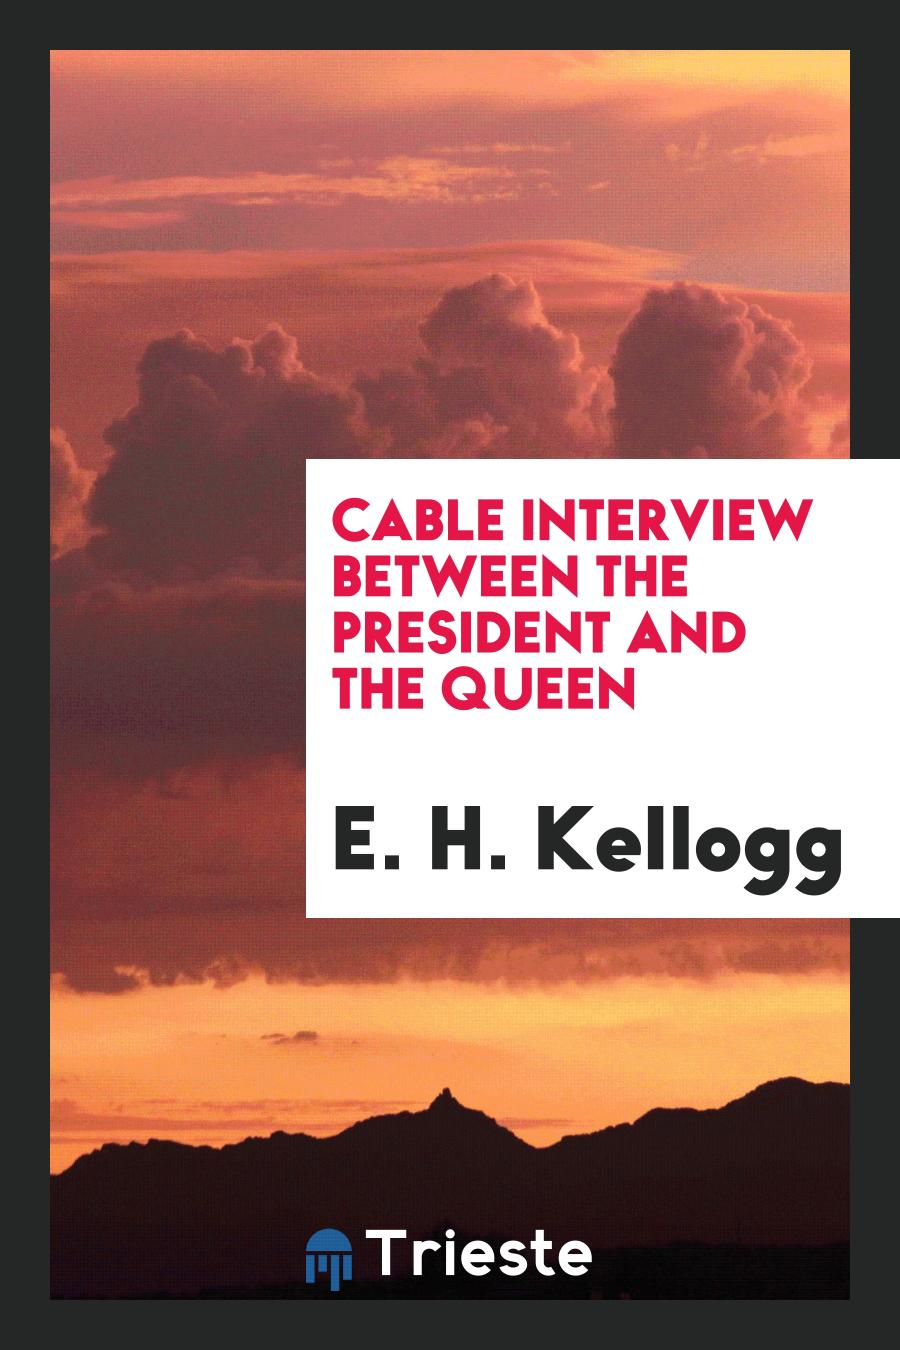 Cable Interview Between the President and the Queen